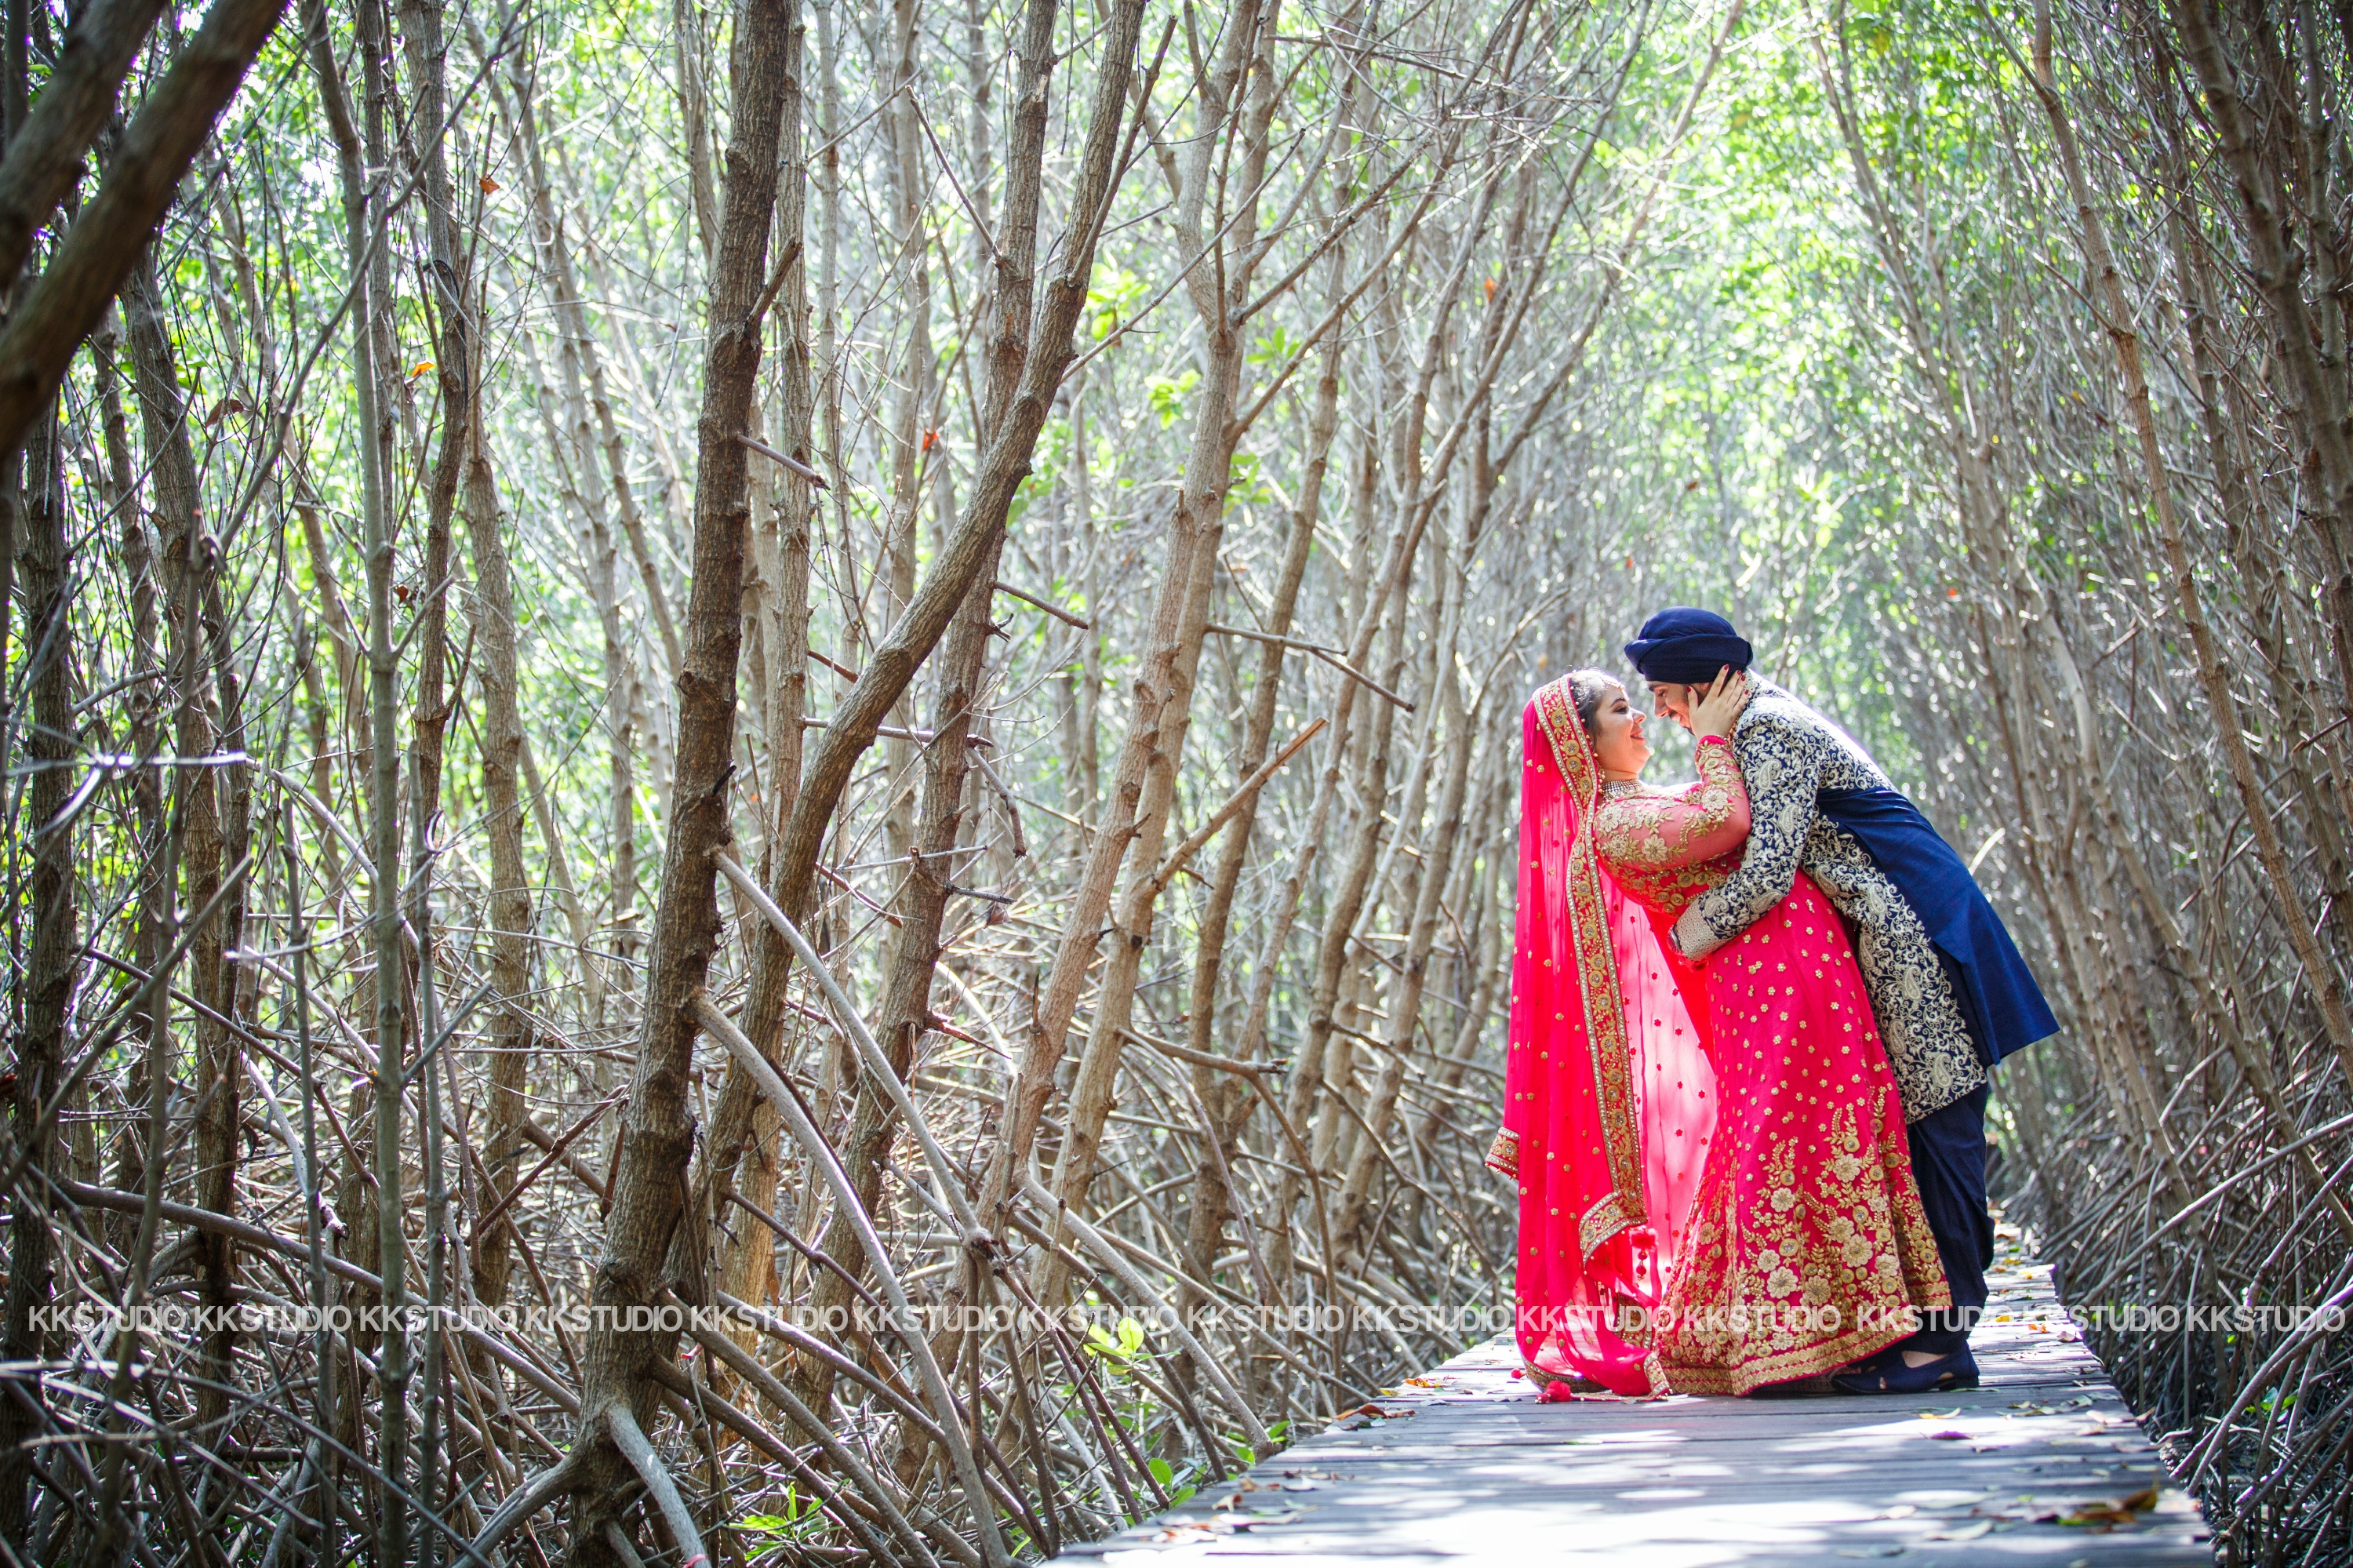 Prewedding-330_wm